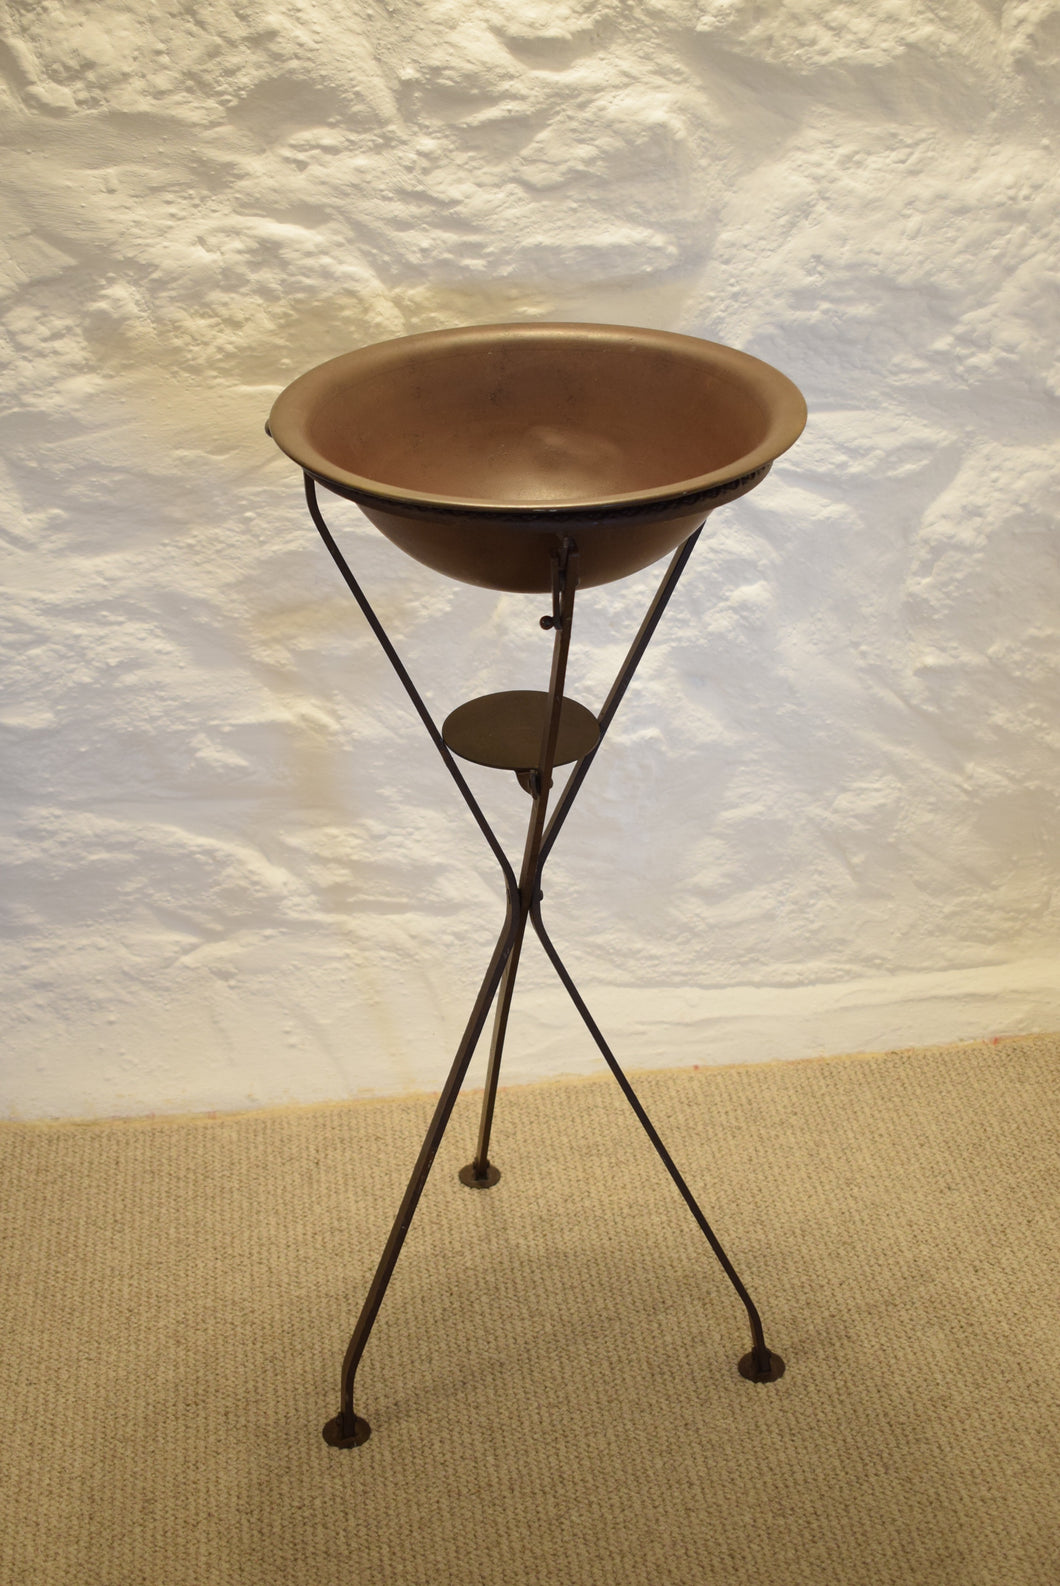 Antique Folding Metal Campaign Wash Stand and Bowl